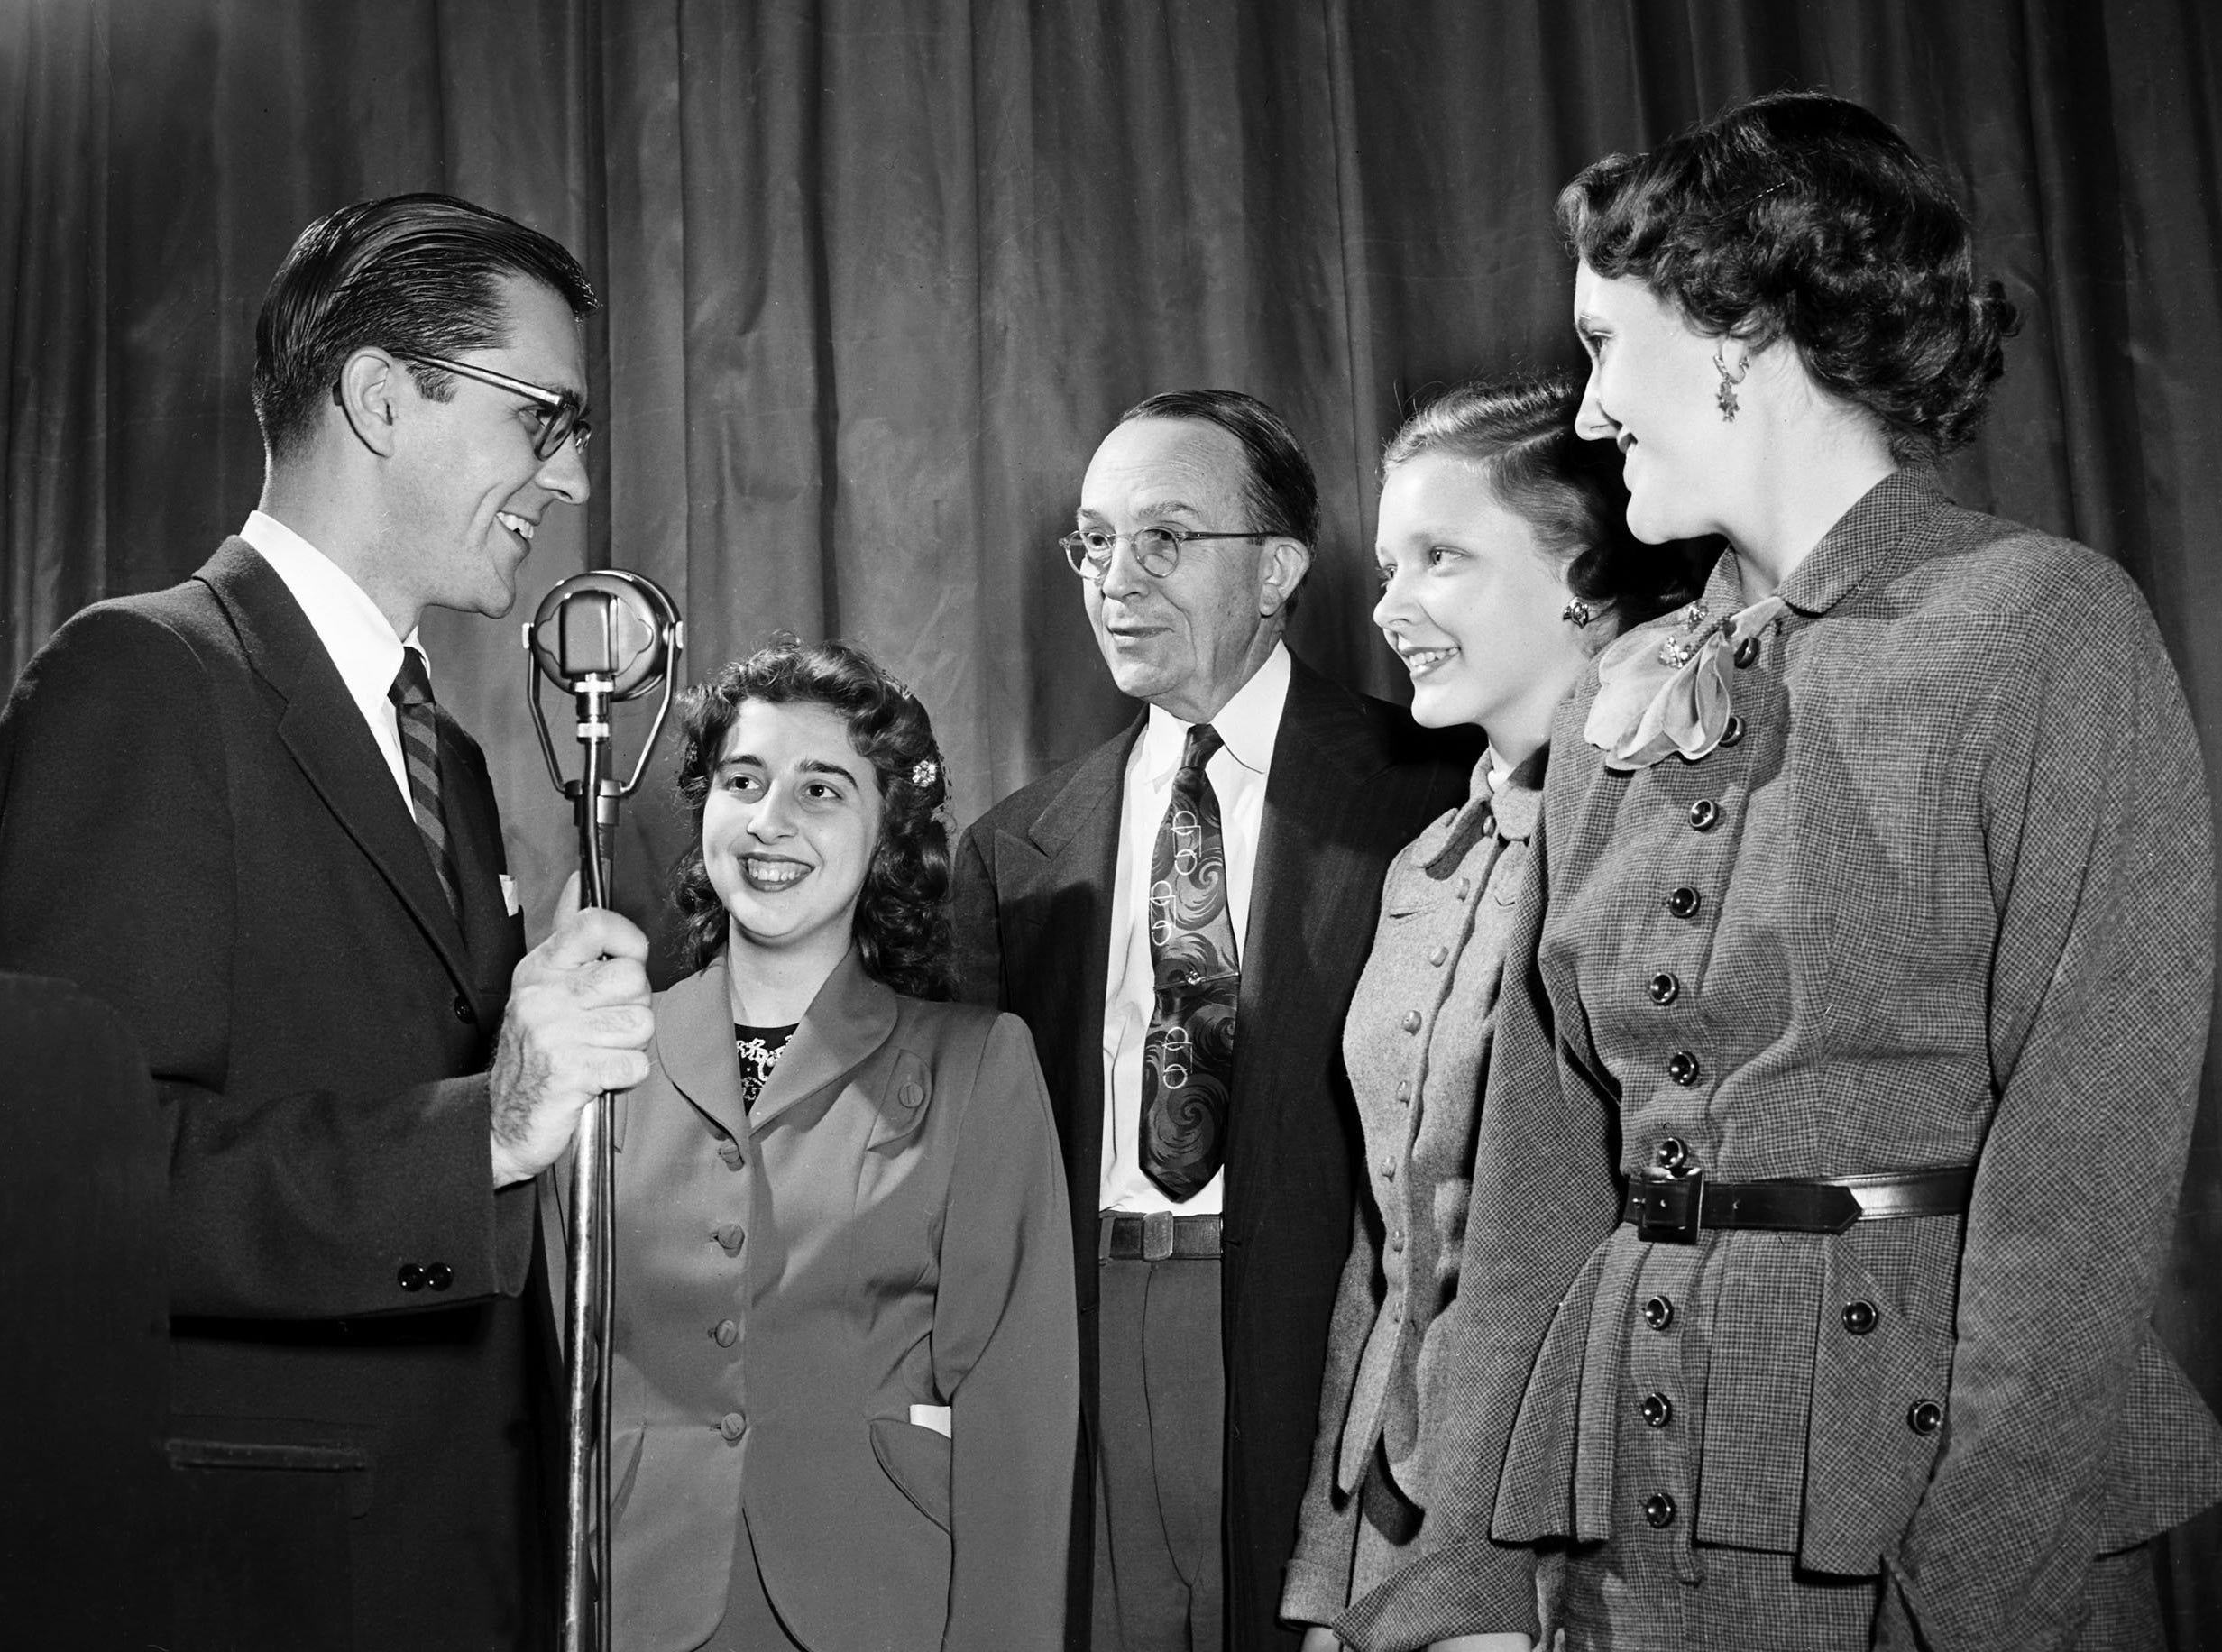 Grouped about Charles Corddry Jr. (Left), aviation writer in the Washington Bureau of the United Press, after his King Cotton Luncheon talk on 3 Nov 1952, are Margaret Rose Pace (Second Left) of St. Agnes, W.C. Teague (Center), editorial writer of The Commercial Appeal who served as toastmaster at the luncheon, Mary Walton Glass (Second Right) of East high and Sue Hall (Right) of Miss Hutchison's School.